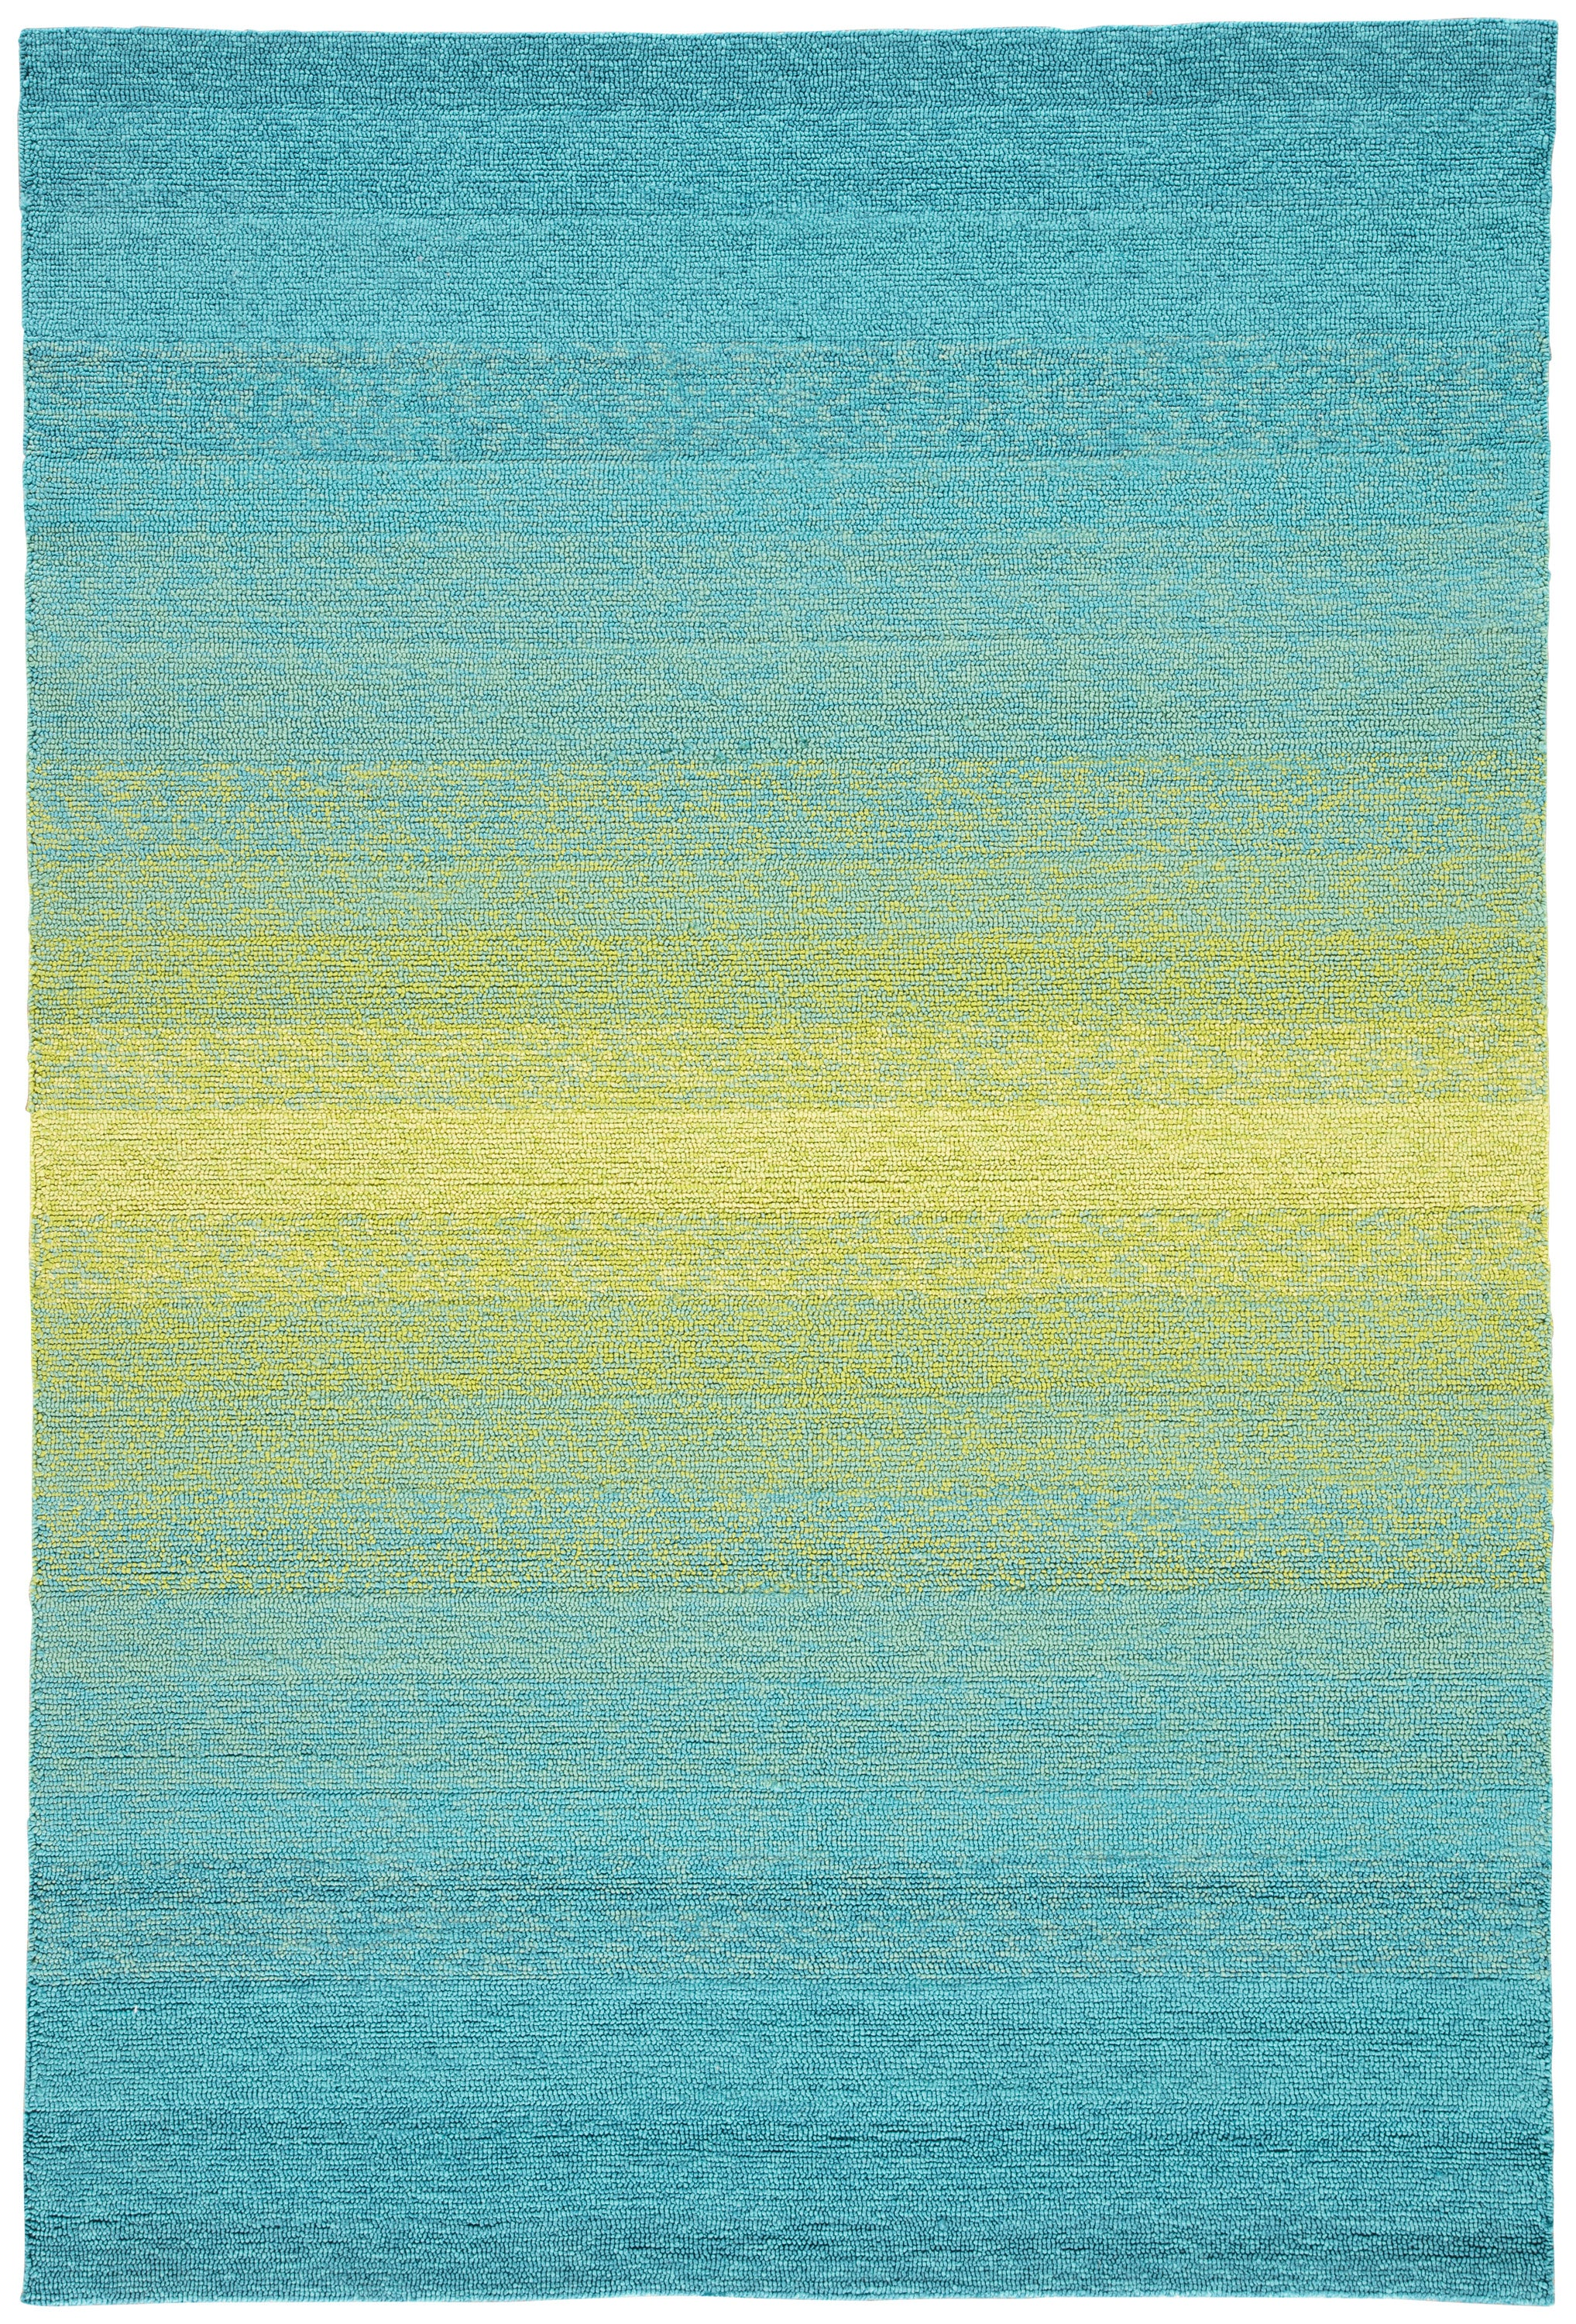 Rectangle Blue Ombre Hand Hooked Synthetics Contemporary recommended for Bedroom, Bathroom, Outdoor, Dining Room, Office, Hallway, Living Room